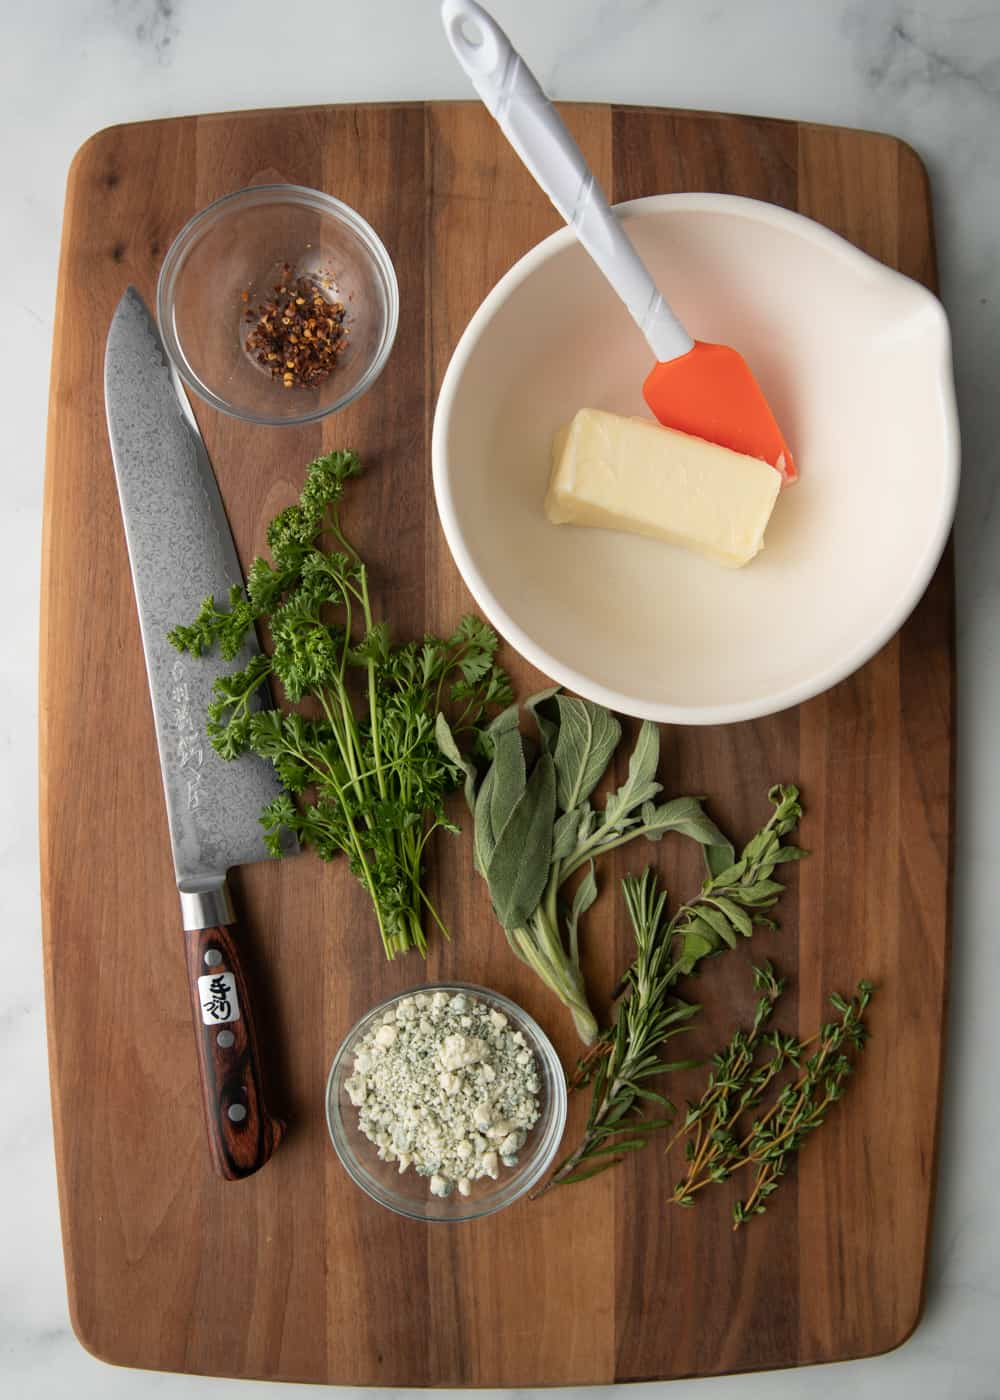 chefs knife, fresh herb and spices with soft butter on wooden cutting board to make compound butter for steak